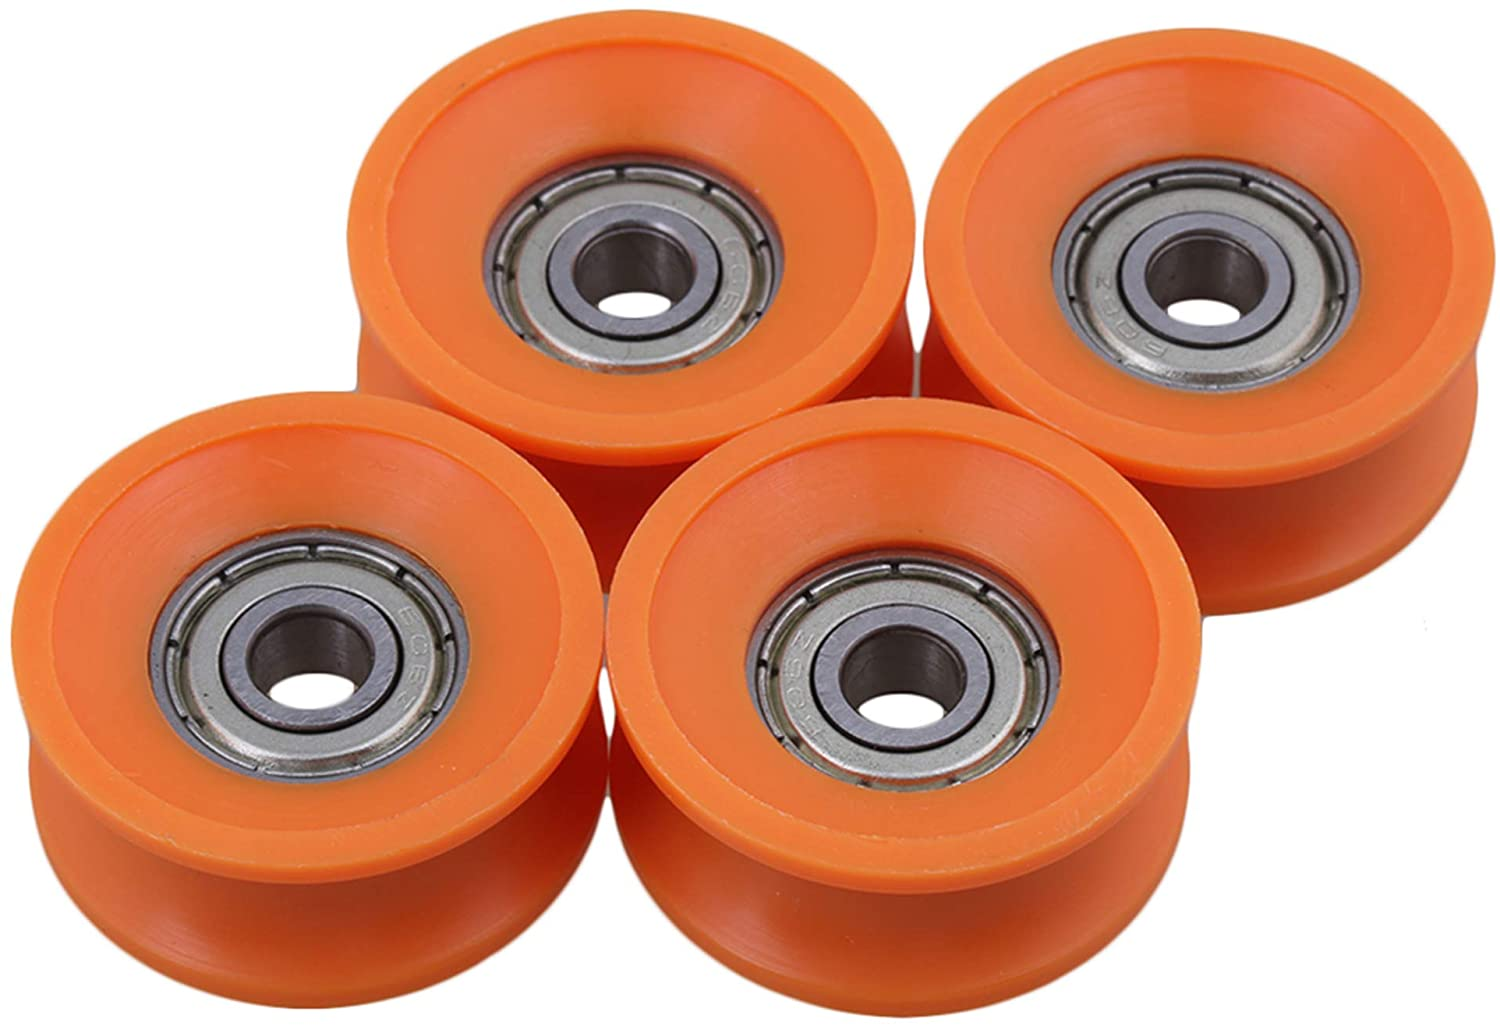 10pcs U Nylon plastic Embedded 696 Groove Ball Bearings 6*24*9mm Guide Pulley